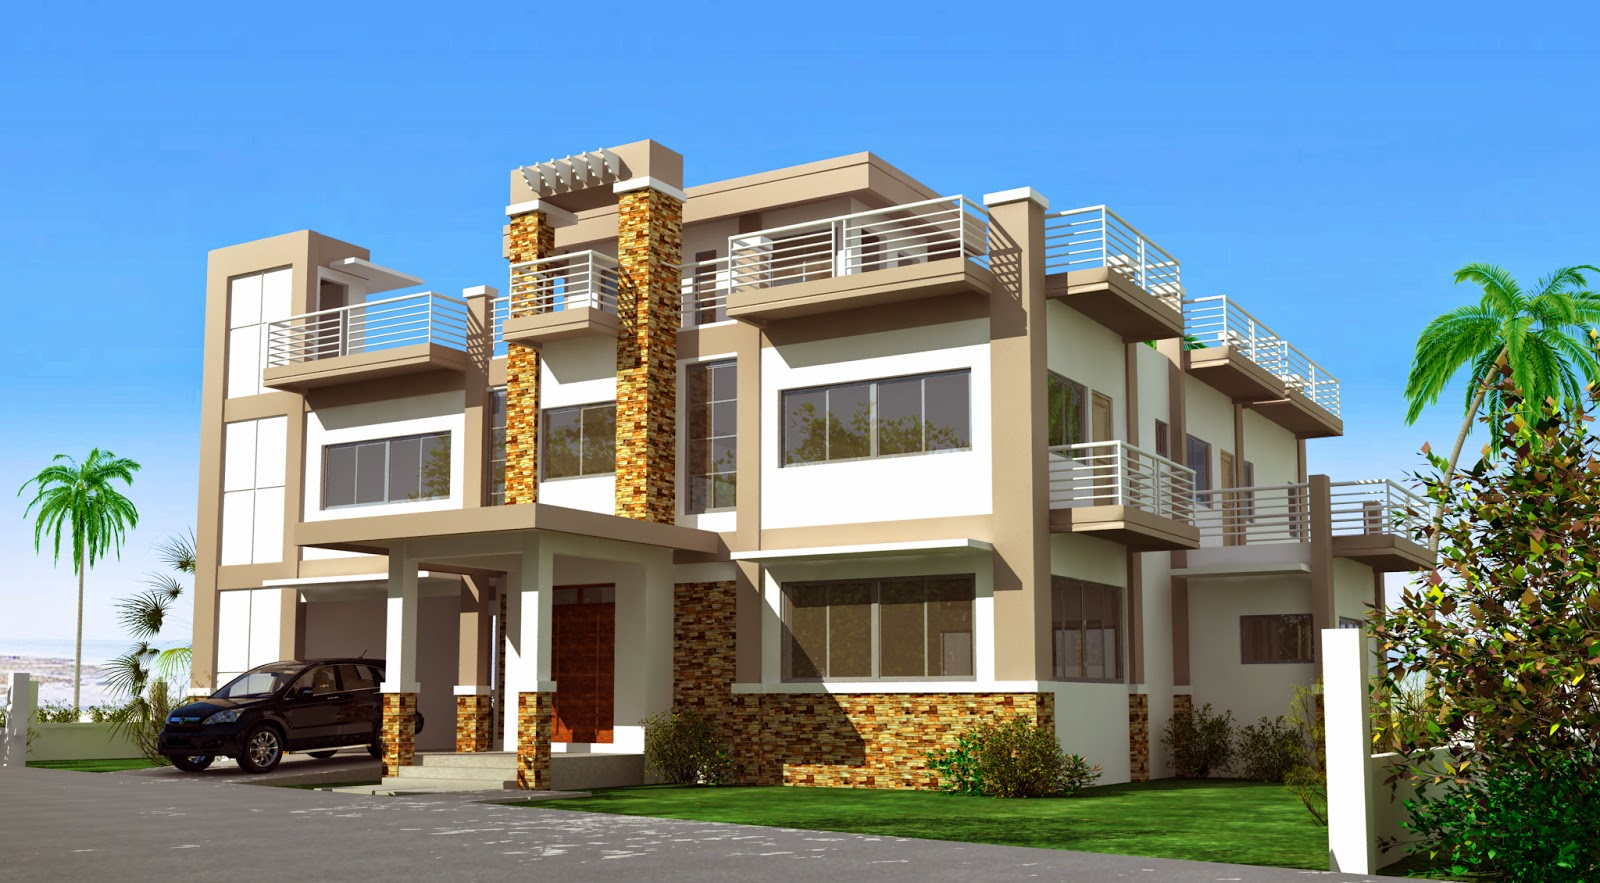 Beautiful houses in the philippines pictures house pictures for Beautiful house in